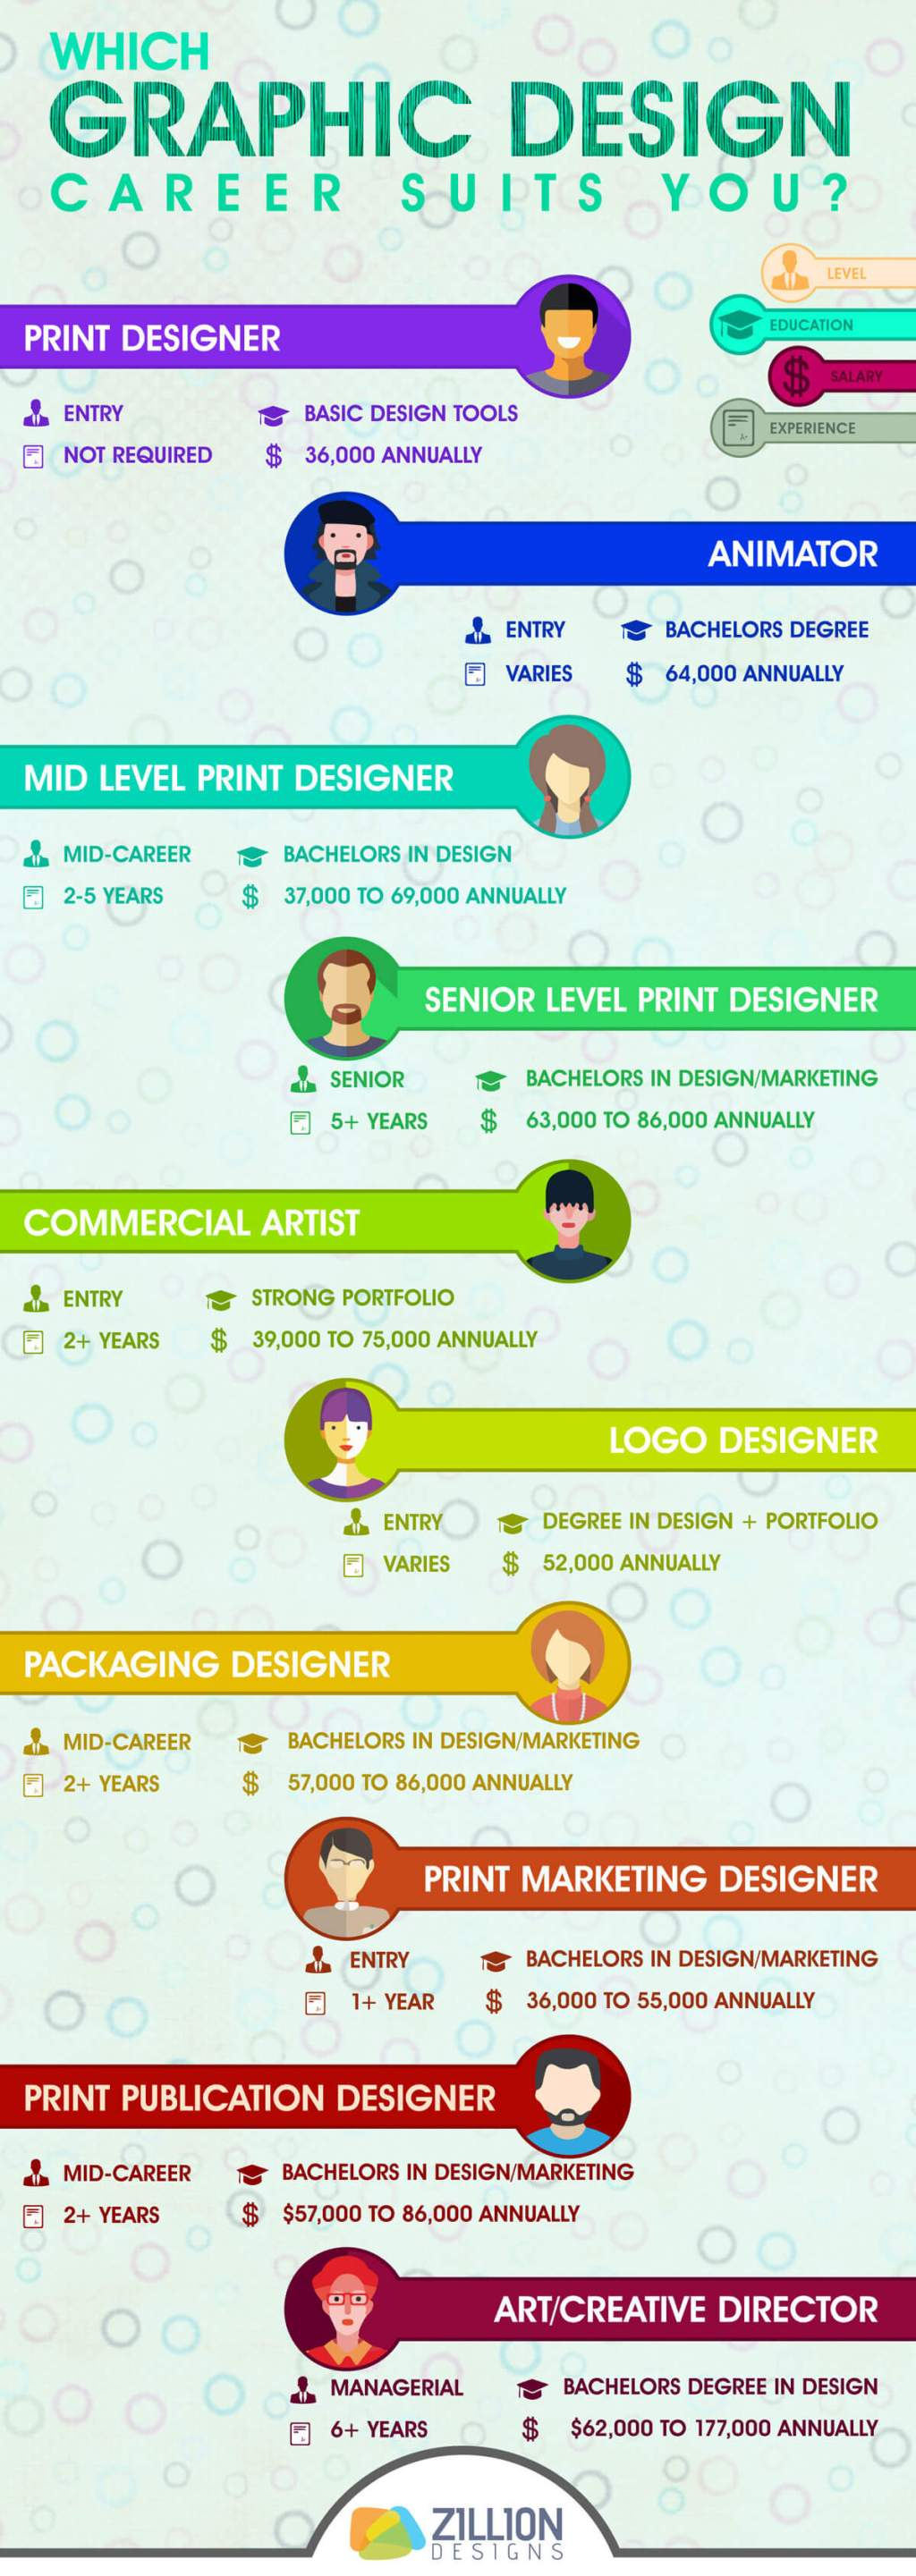 Infographic: Which graphic design career suits you?